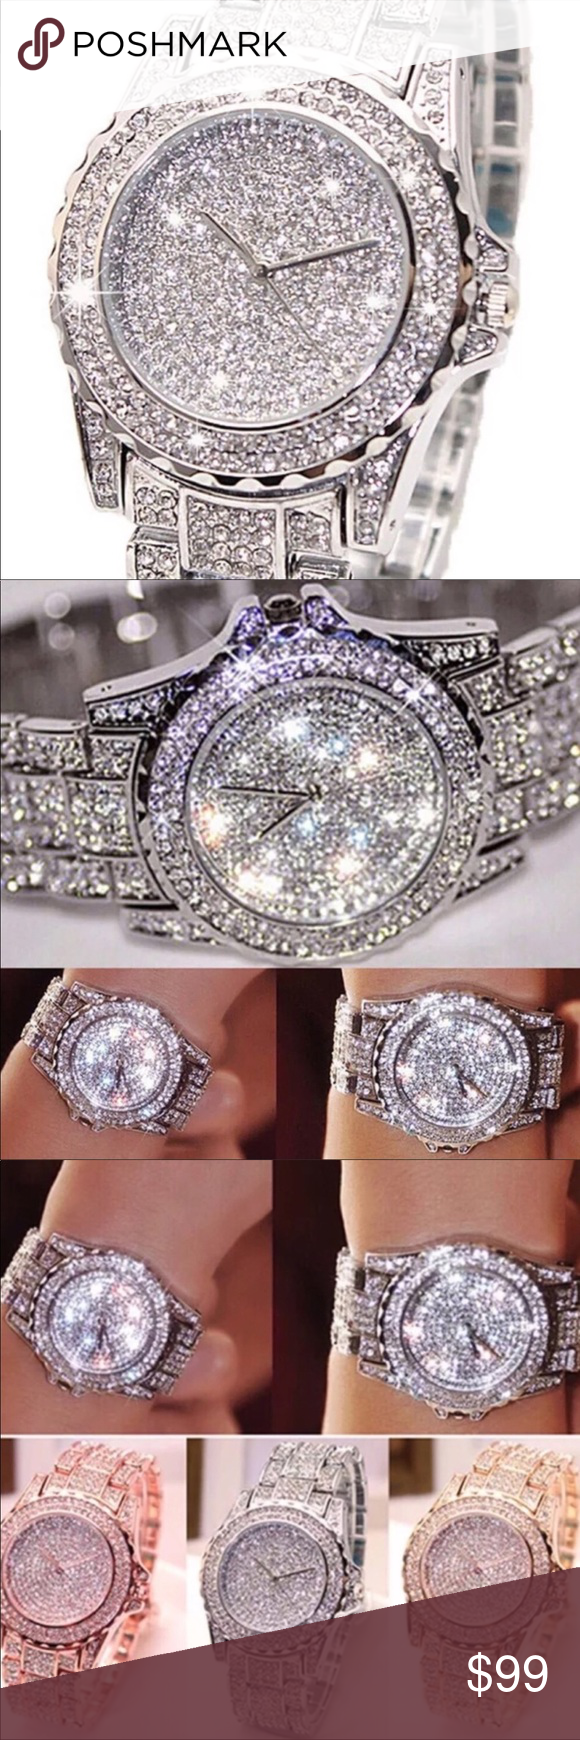 Silver is now Available Major Bling Watch